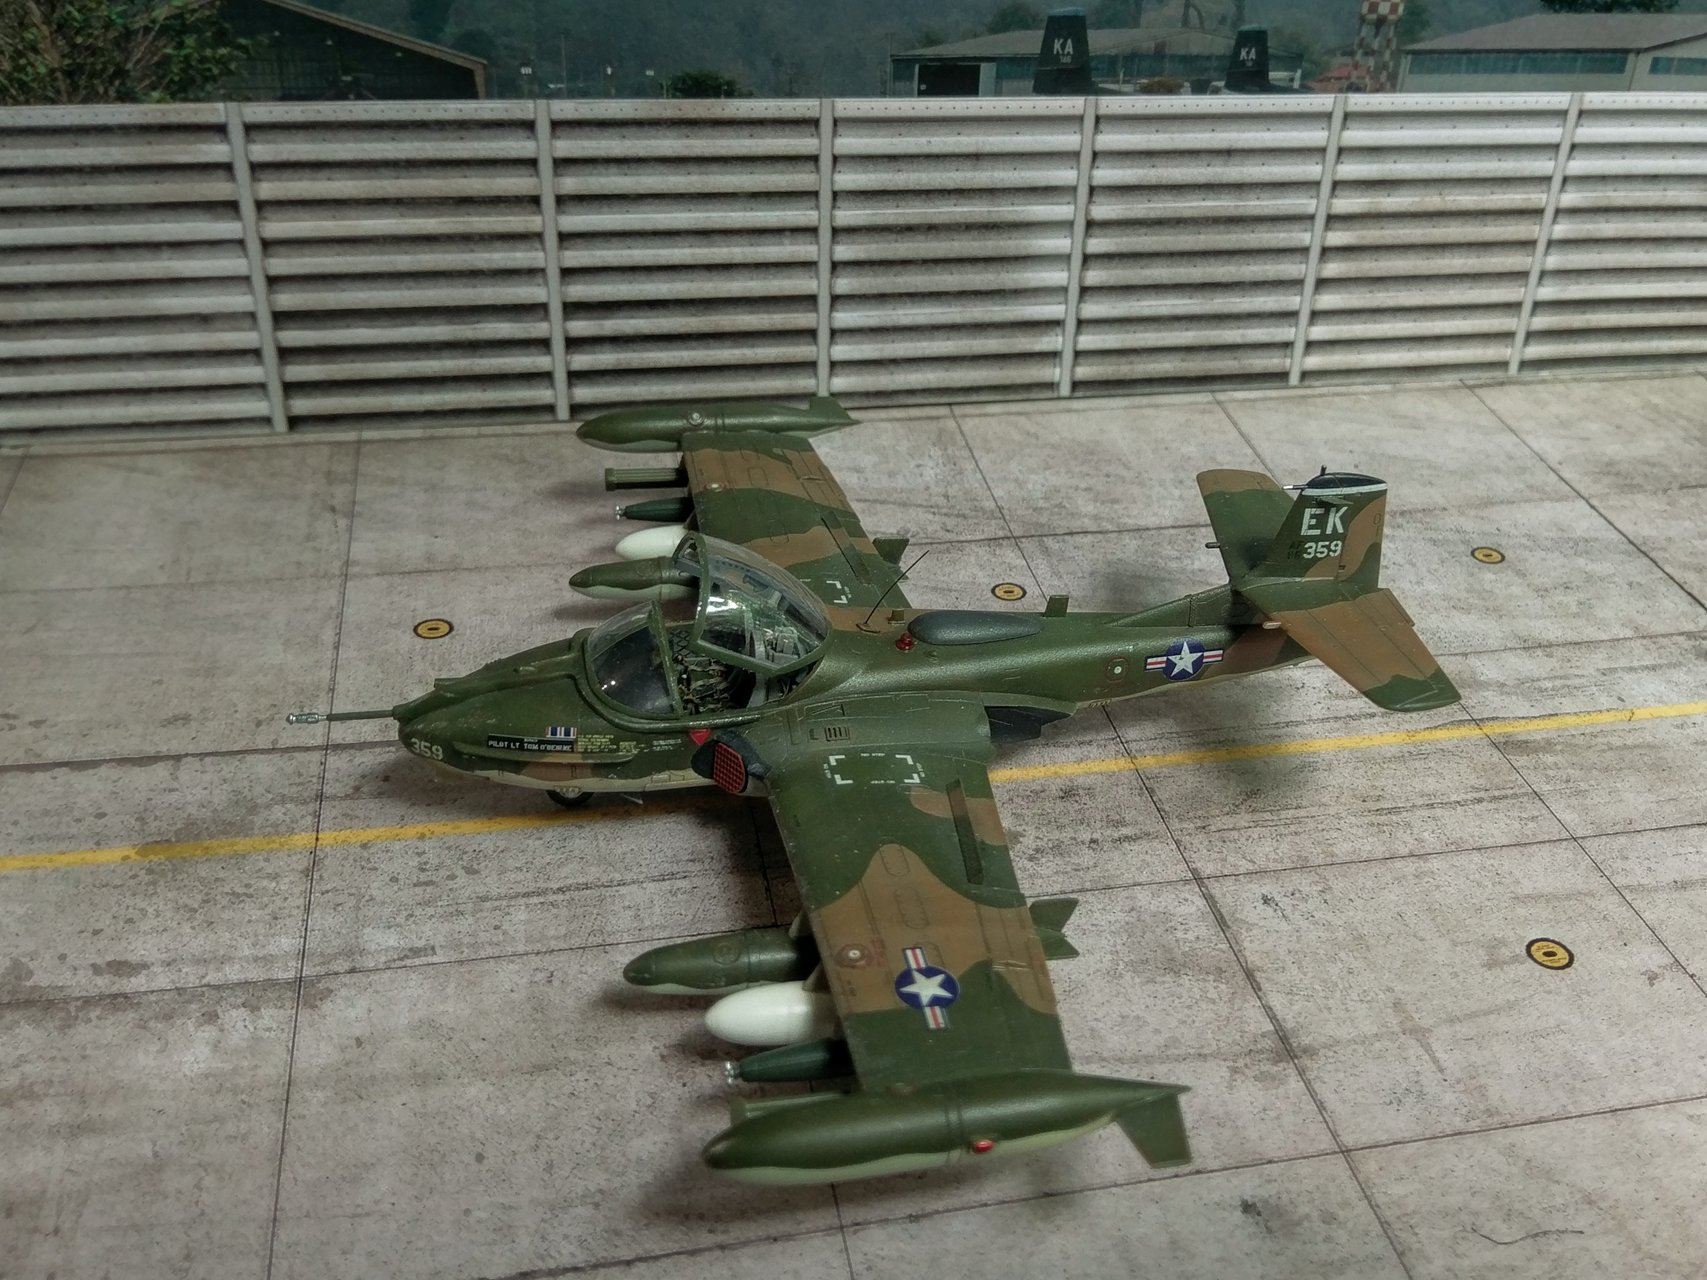 А-37 Dragonfly, Academy 1/72 - Ready for Inspection - Aircraft